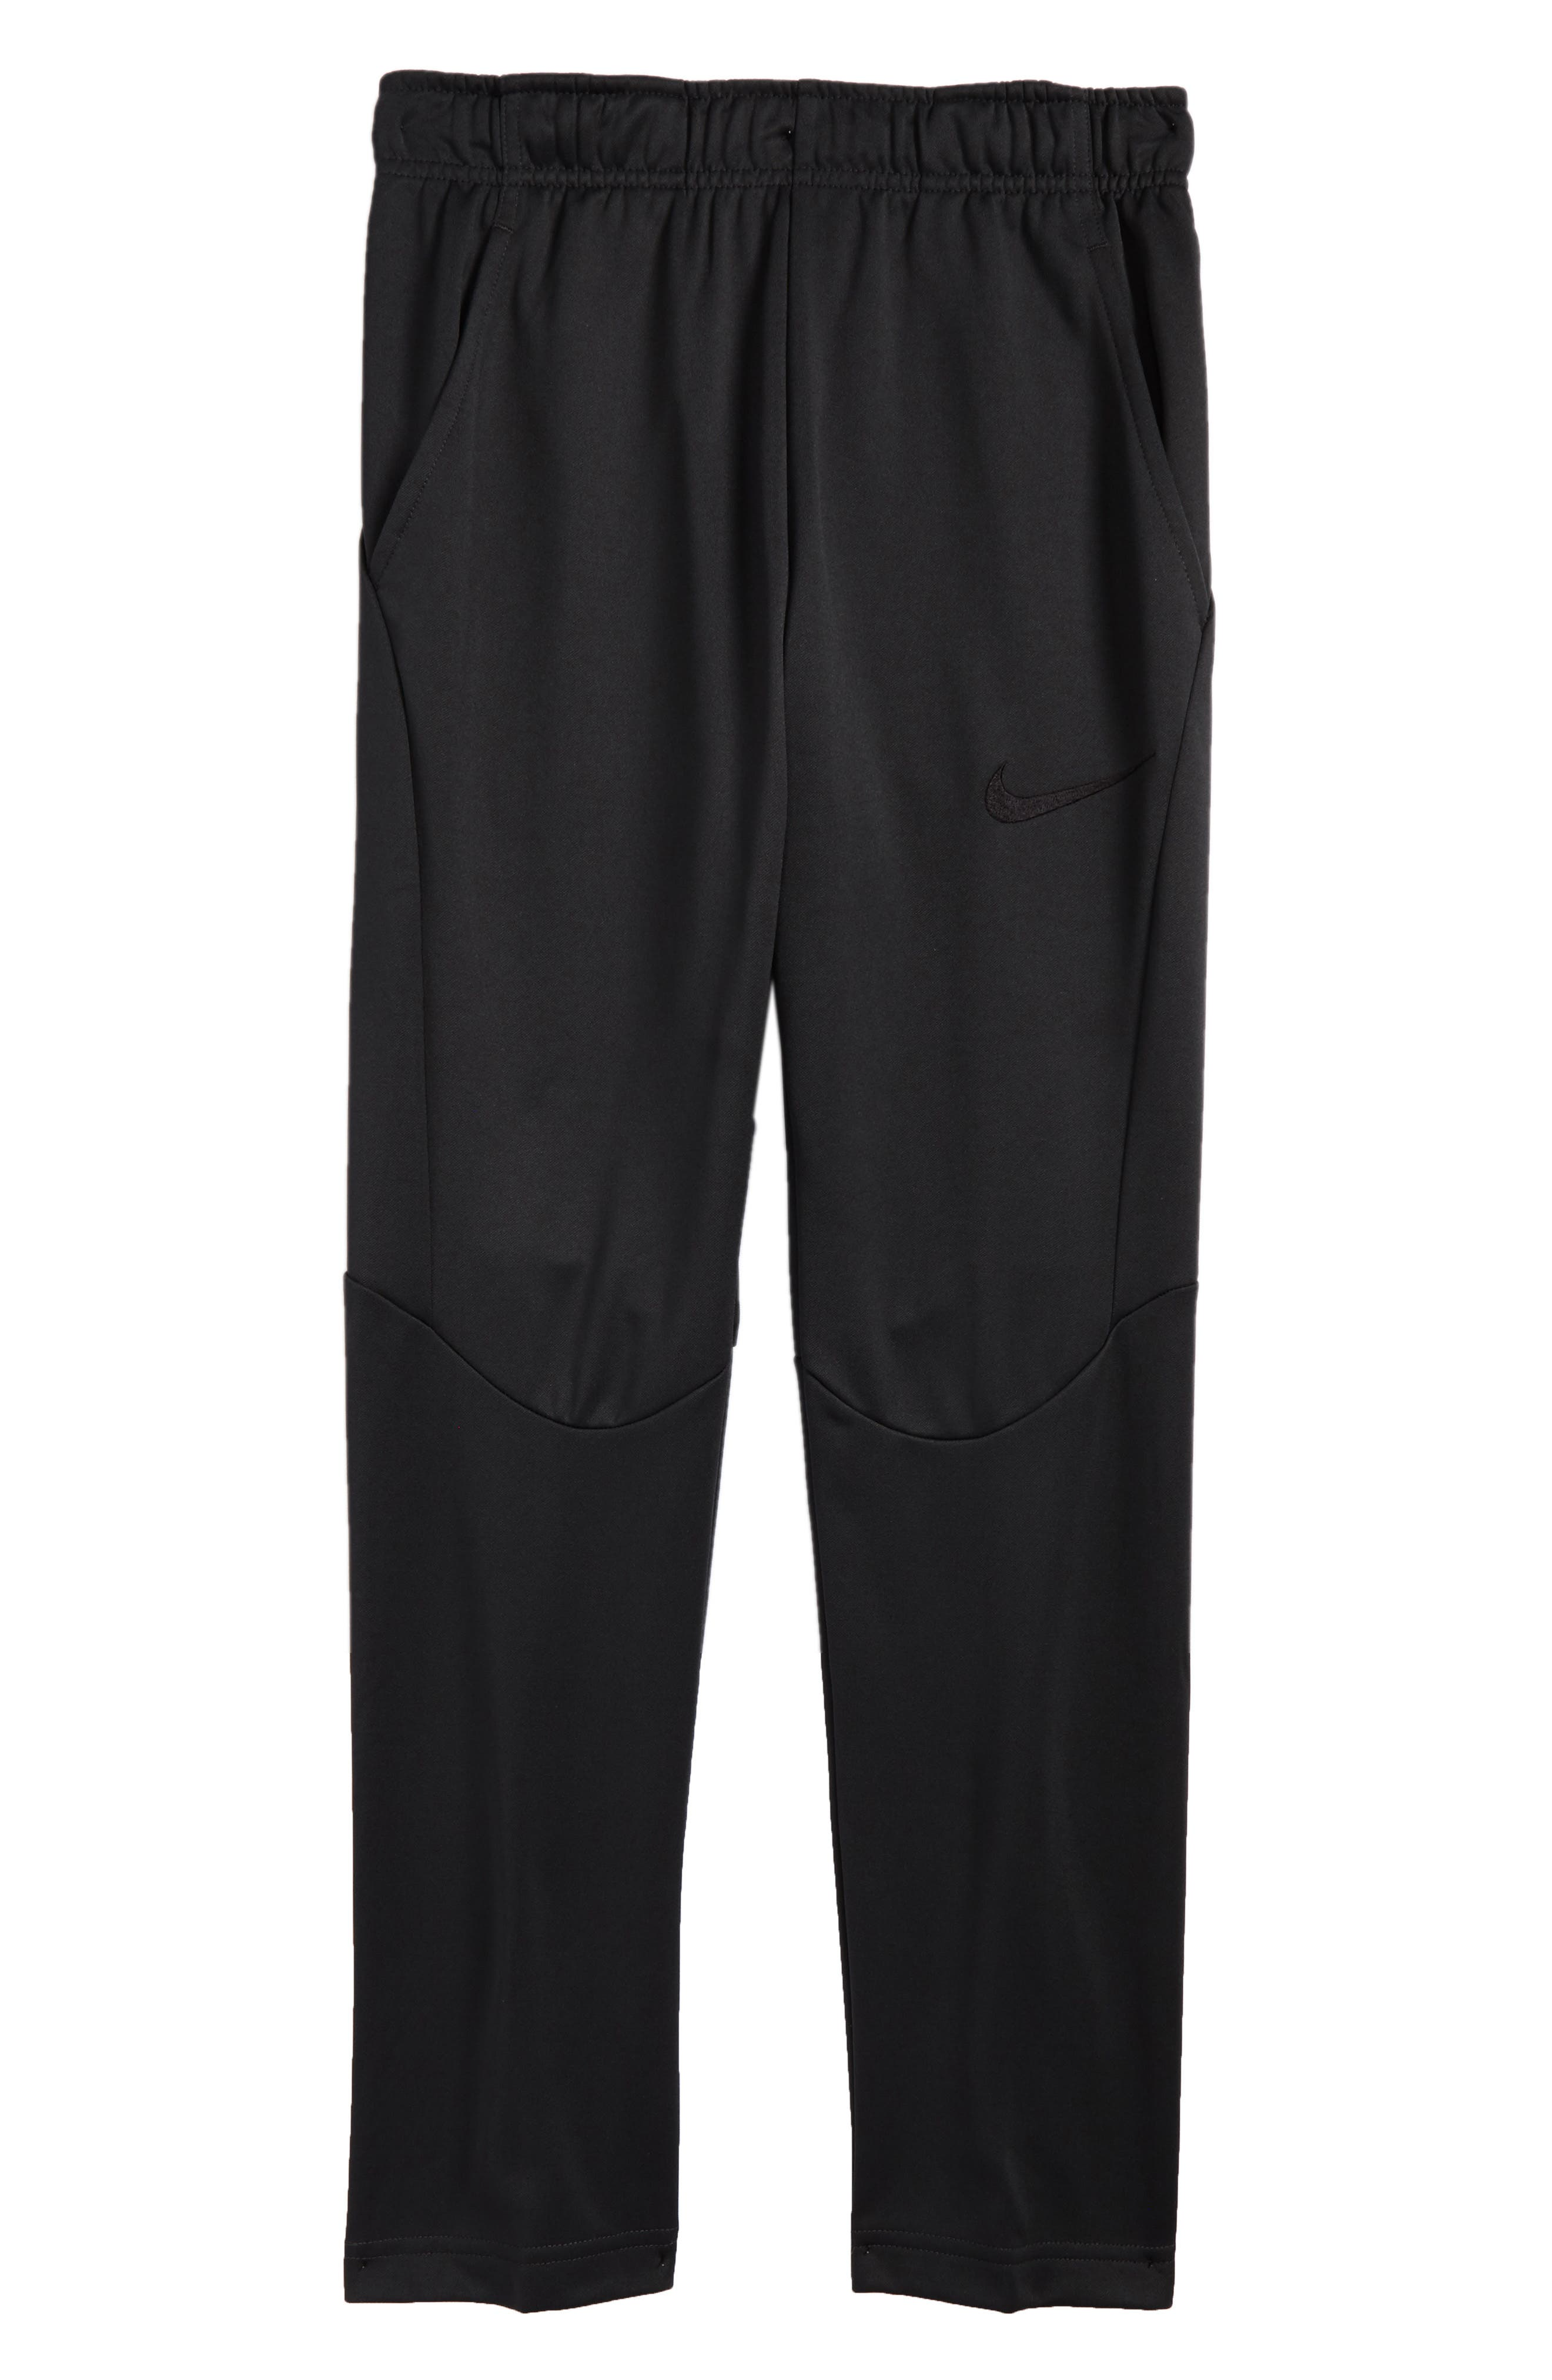 Therma-FIT Training Pants,                             Alternate thumbnail 9, color,